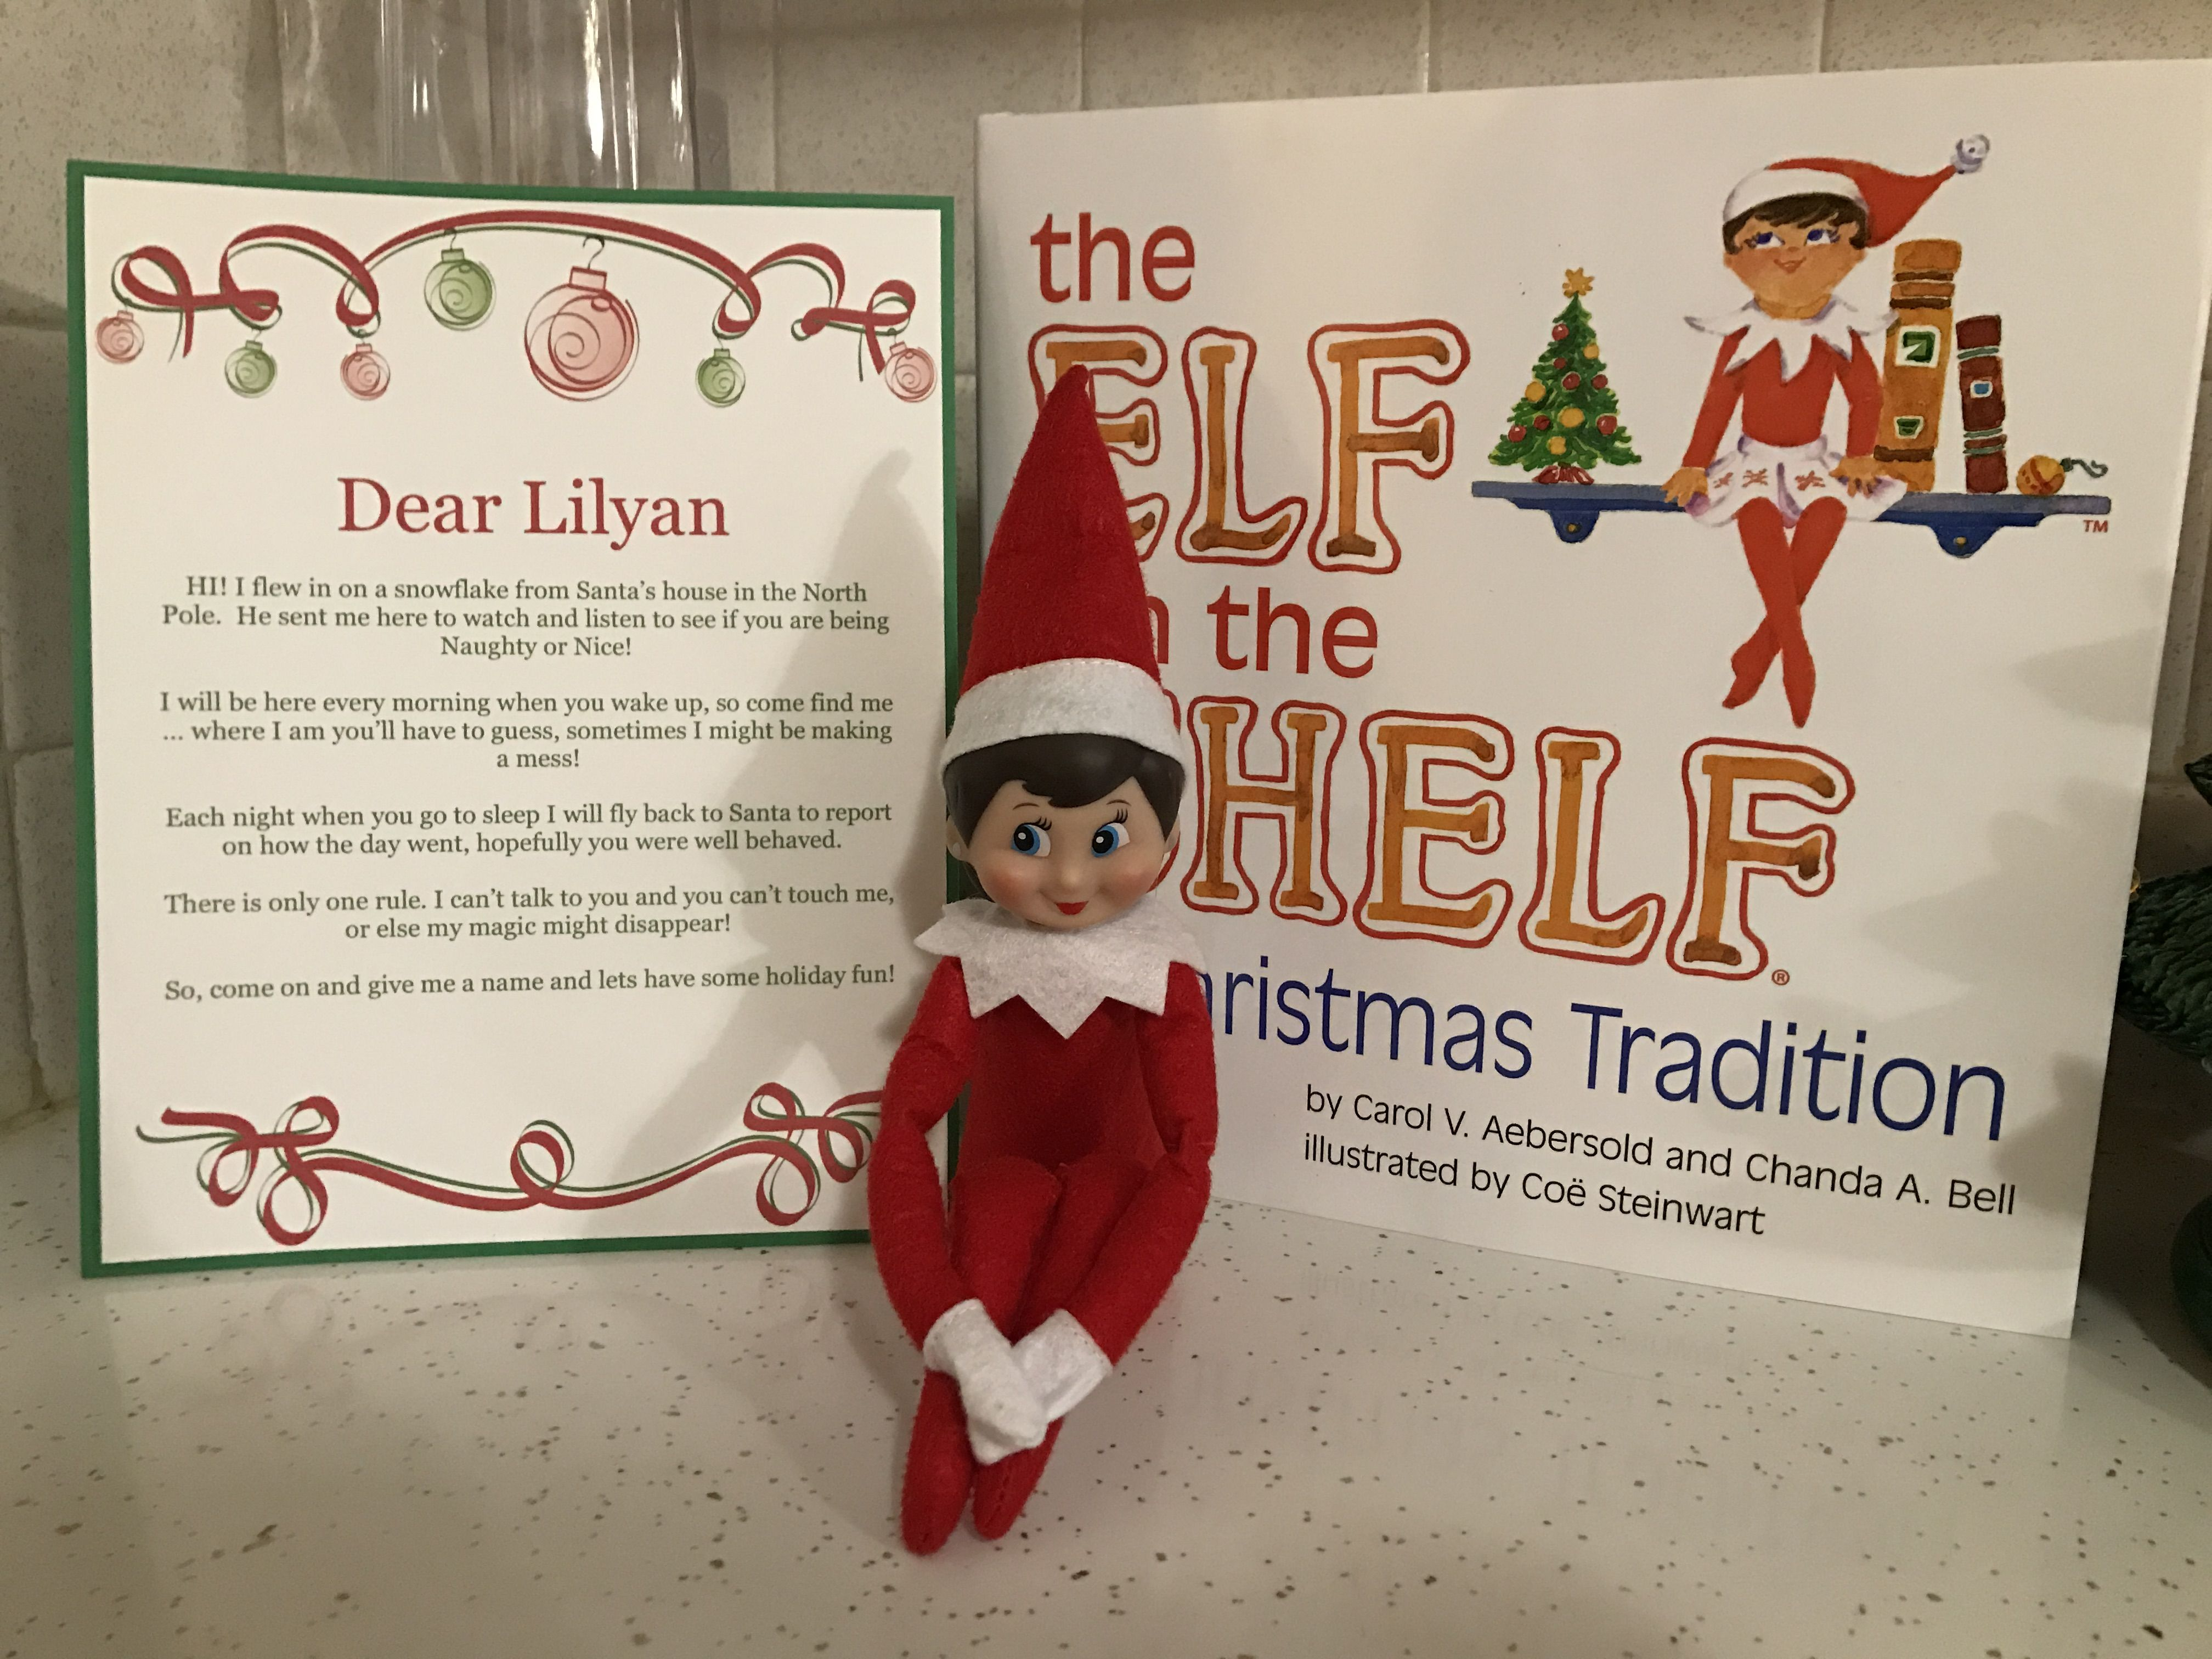 First time doing Elf on the Shelf with our 3.5 year old